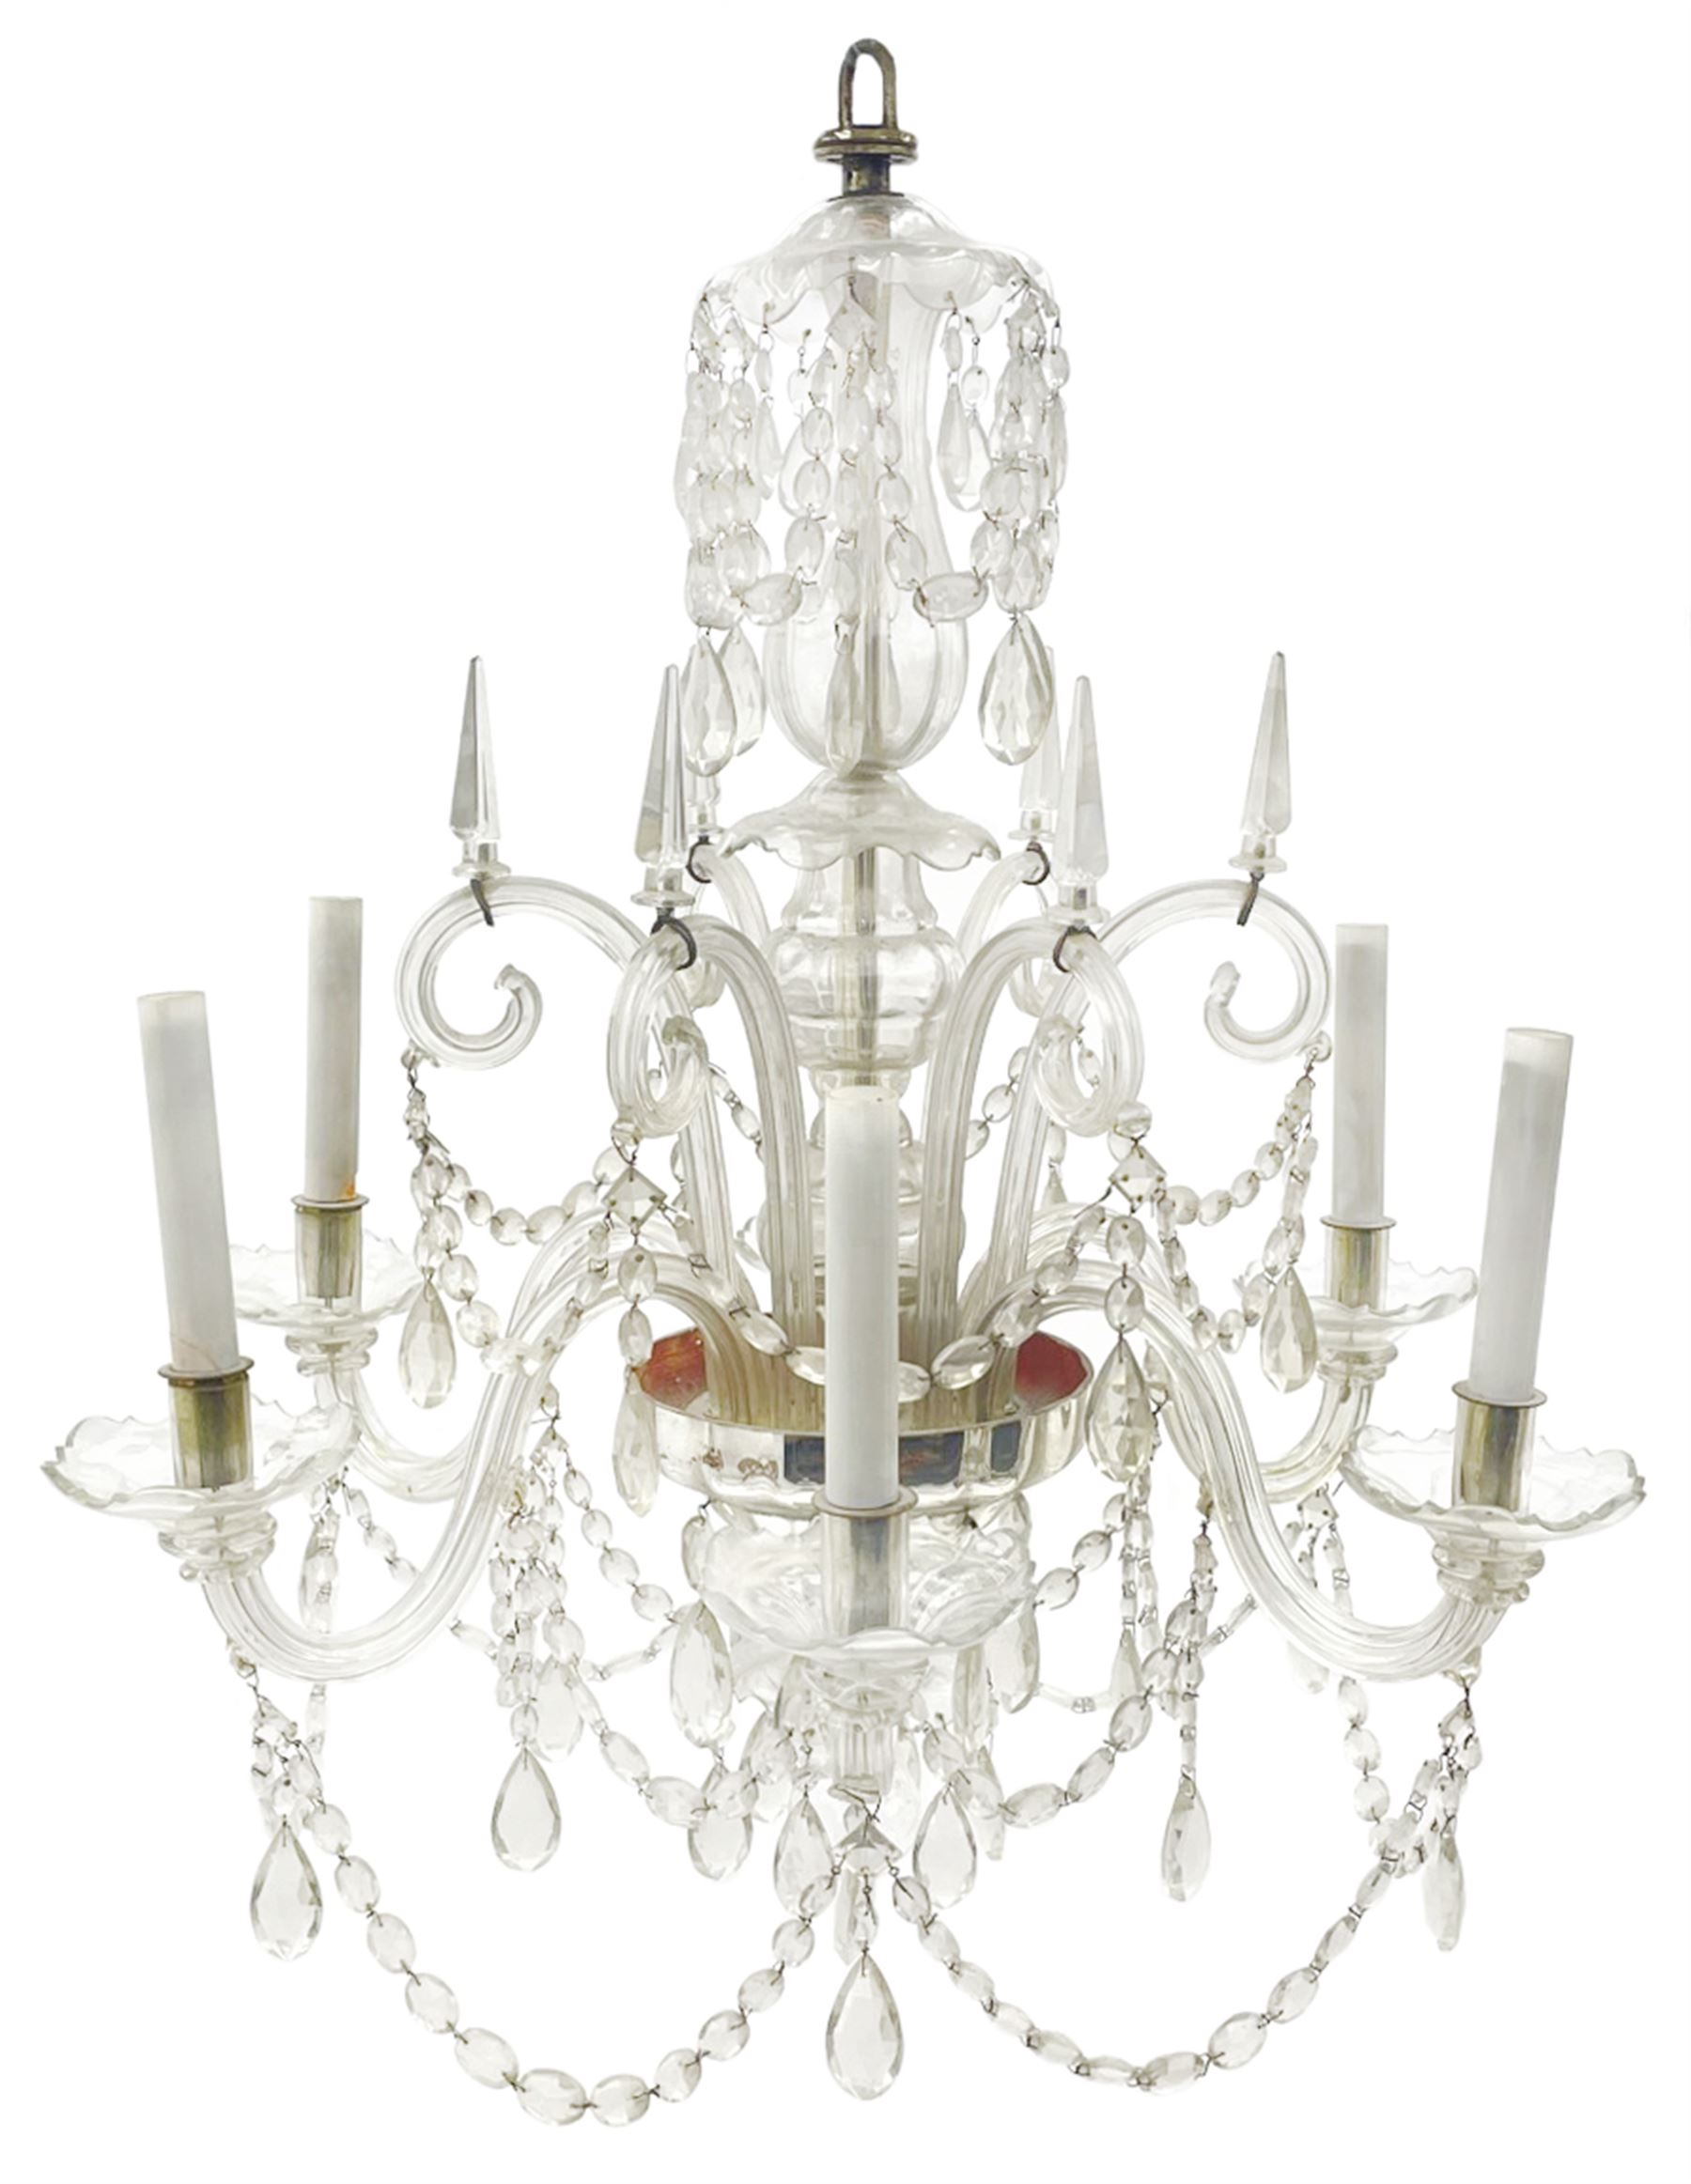 Late 20th century glass chandelier